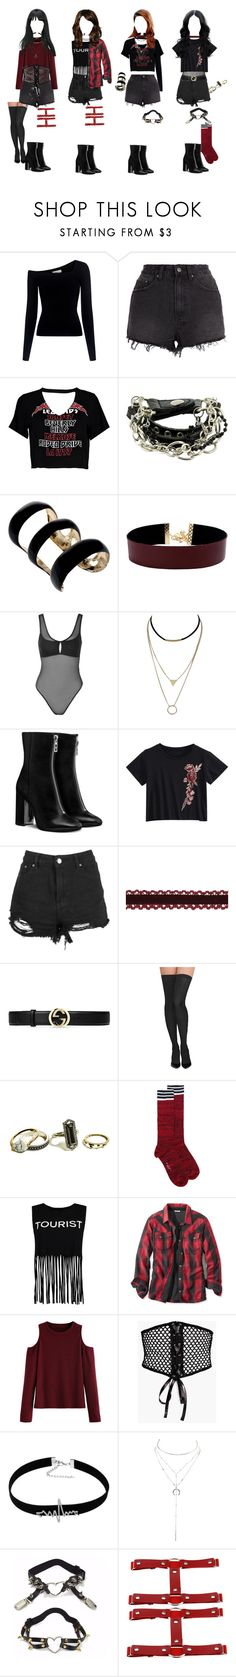 """[mv] debut - black widow {ignite}"" by galaxiumin ❤ liked on Polyvore featuring A.L.C., Ksubi, Boohoo, Elie Saab, Vanessa Mooney, Topshop, Gucci, Commando, GUESS and Marni"